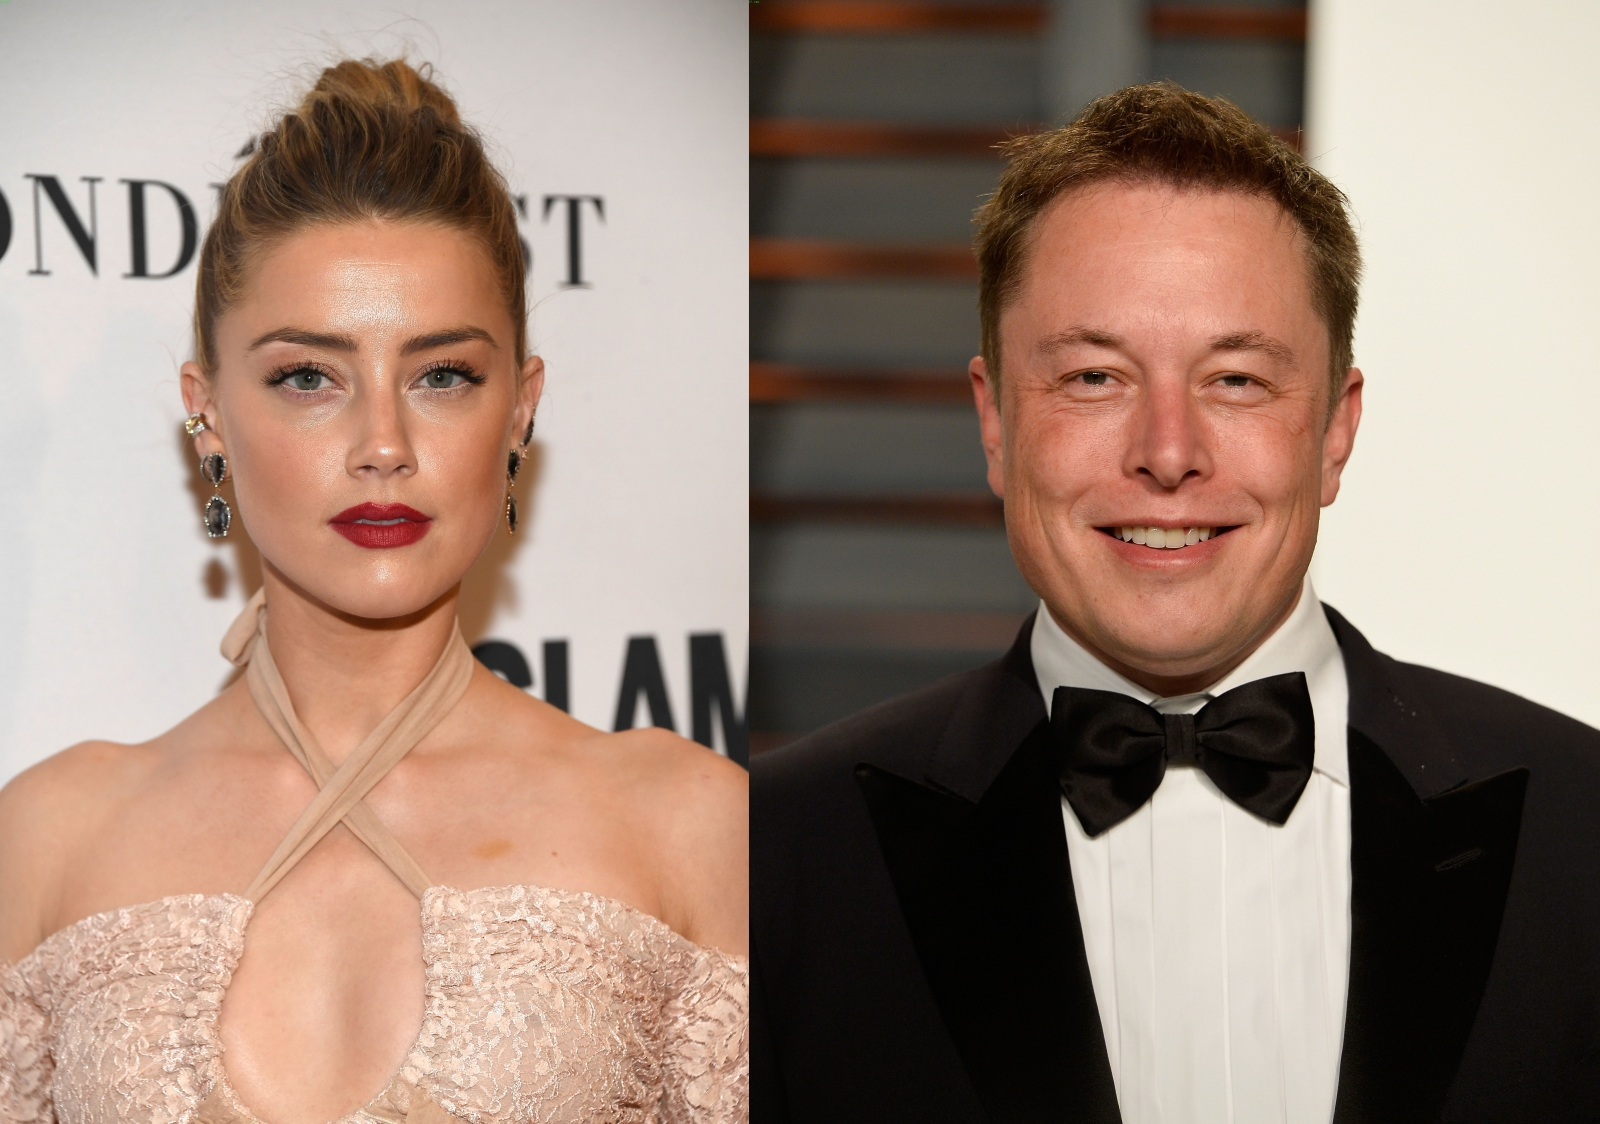 Break-up party! Amber Heard couldn't care less about Elon Musk split as she celebrates with pals